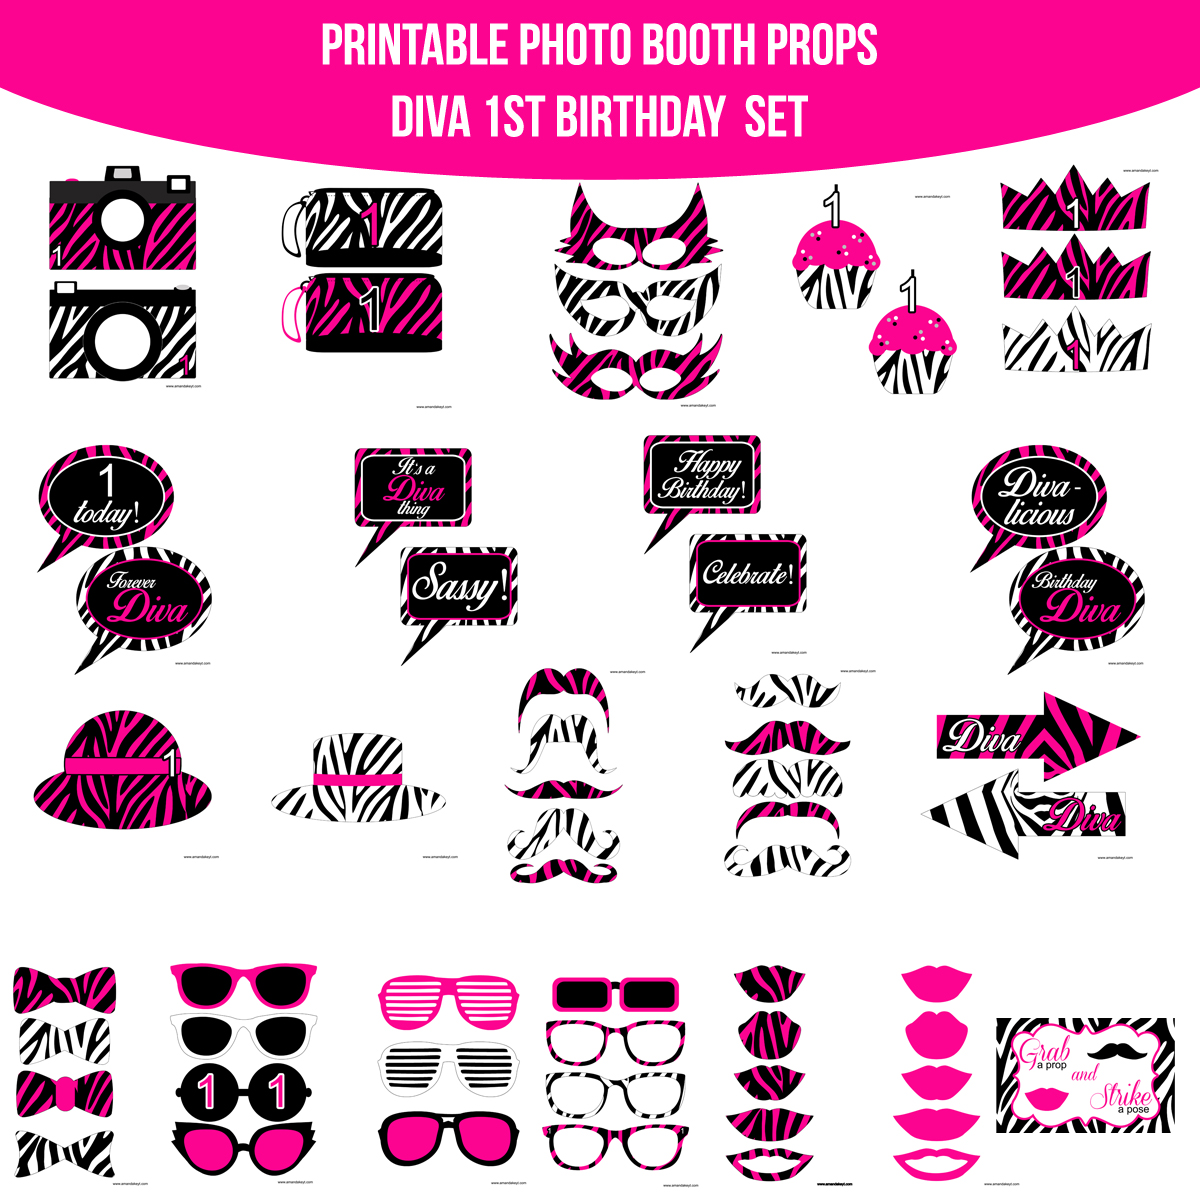 photograph relating to Printable Photo Booth Props Birthday known as Fast Down load Diva Initial 1st Birthday Printable Photograph Booth Prop Preset  Amanda Keyt Printable Types